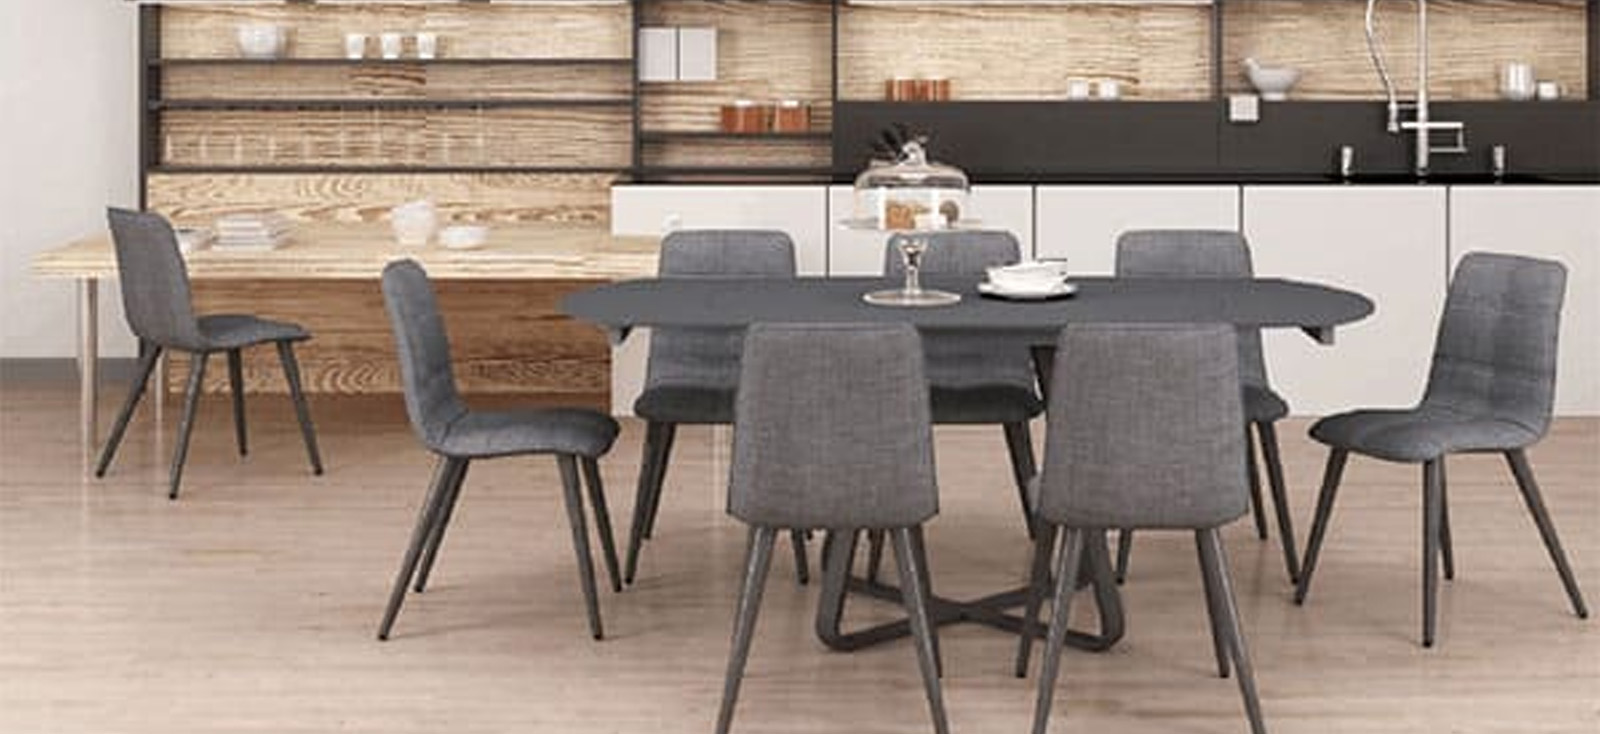 Dining Furniture at Atkinsons